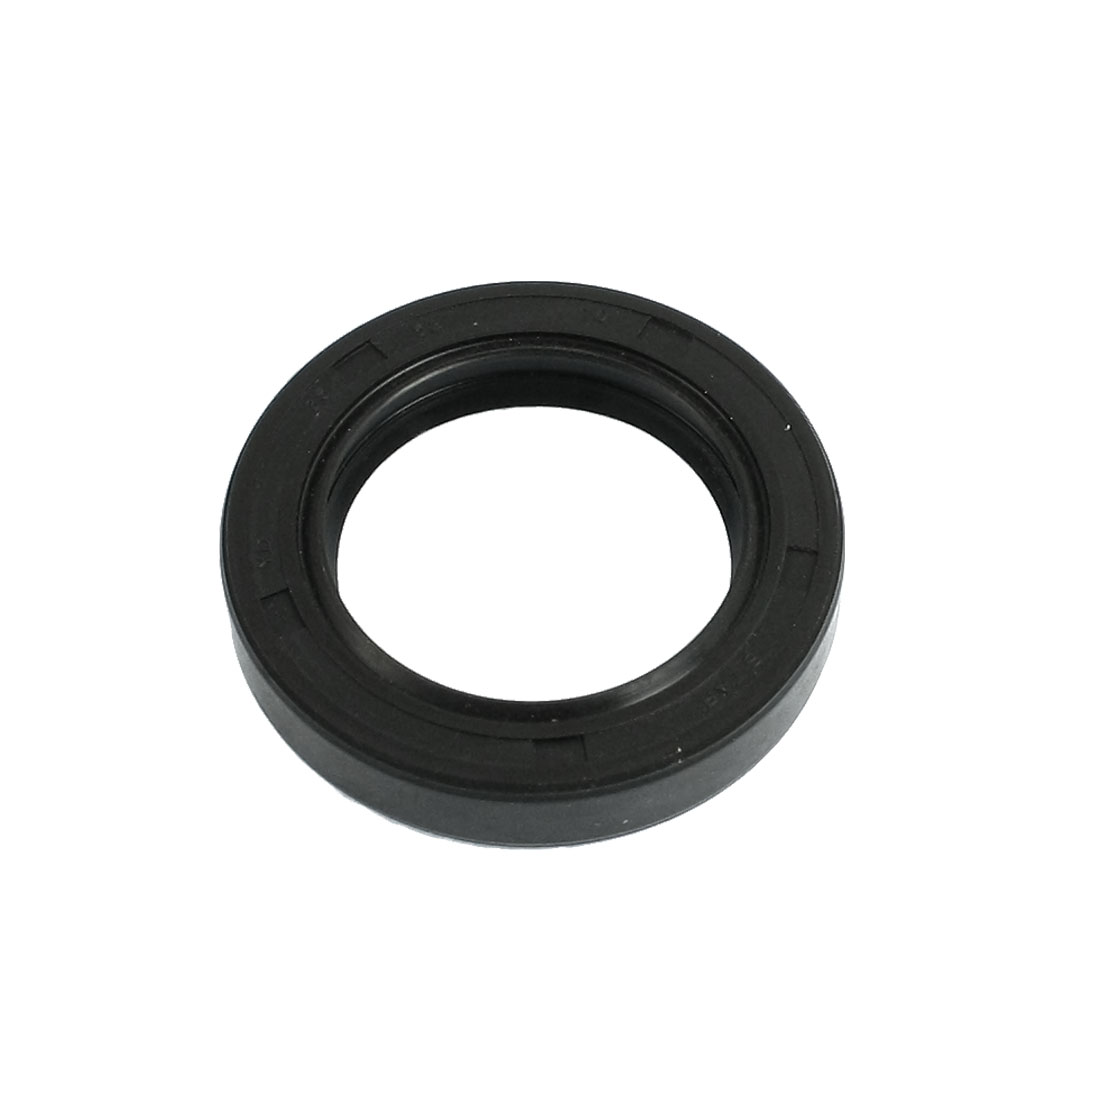 35mm x 51mm x 10mm Metal Spring NBR Double Lip Oil Shaft Seal